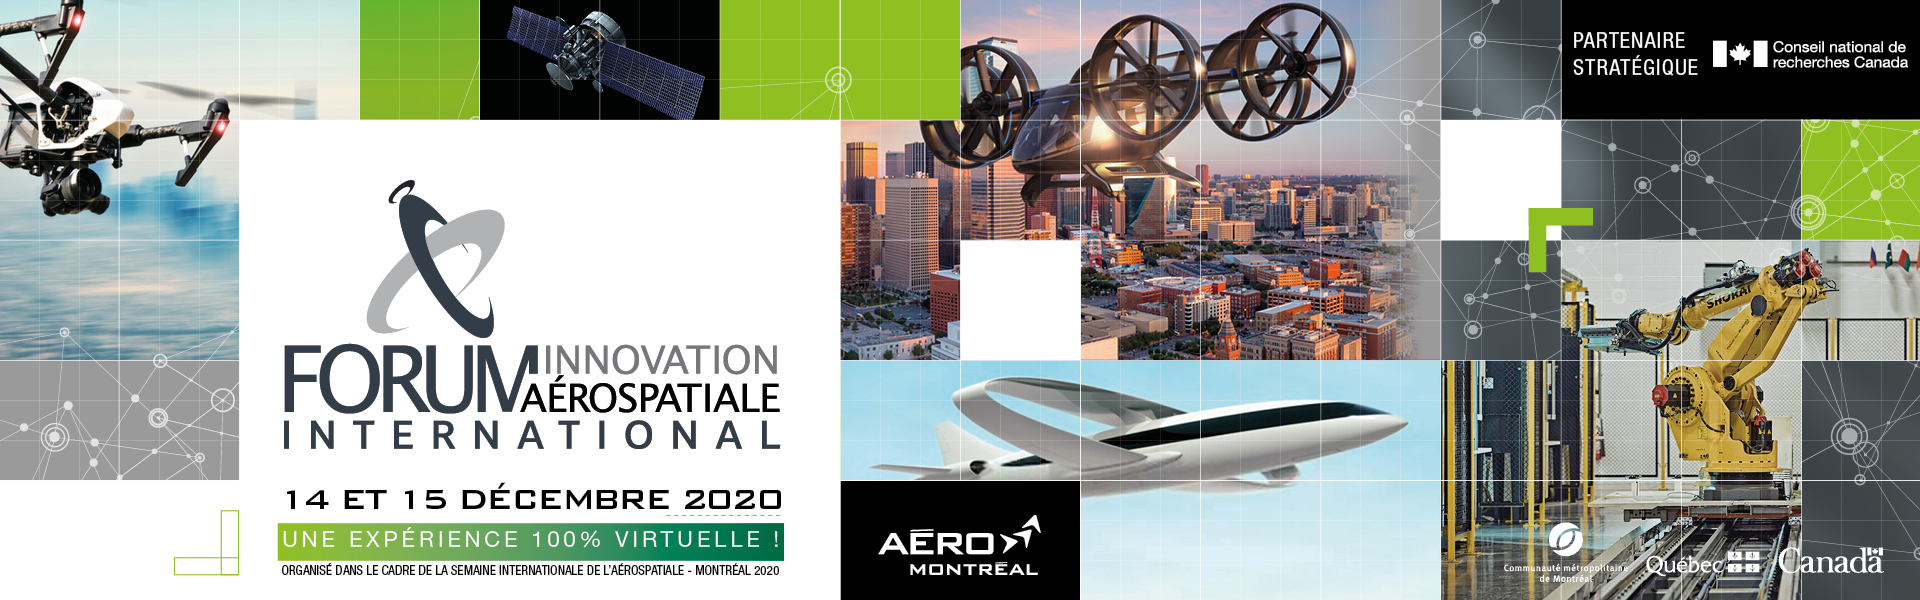 Forum innovation aérospatiale international 2020 (100% virtuel)